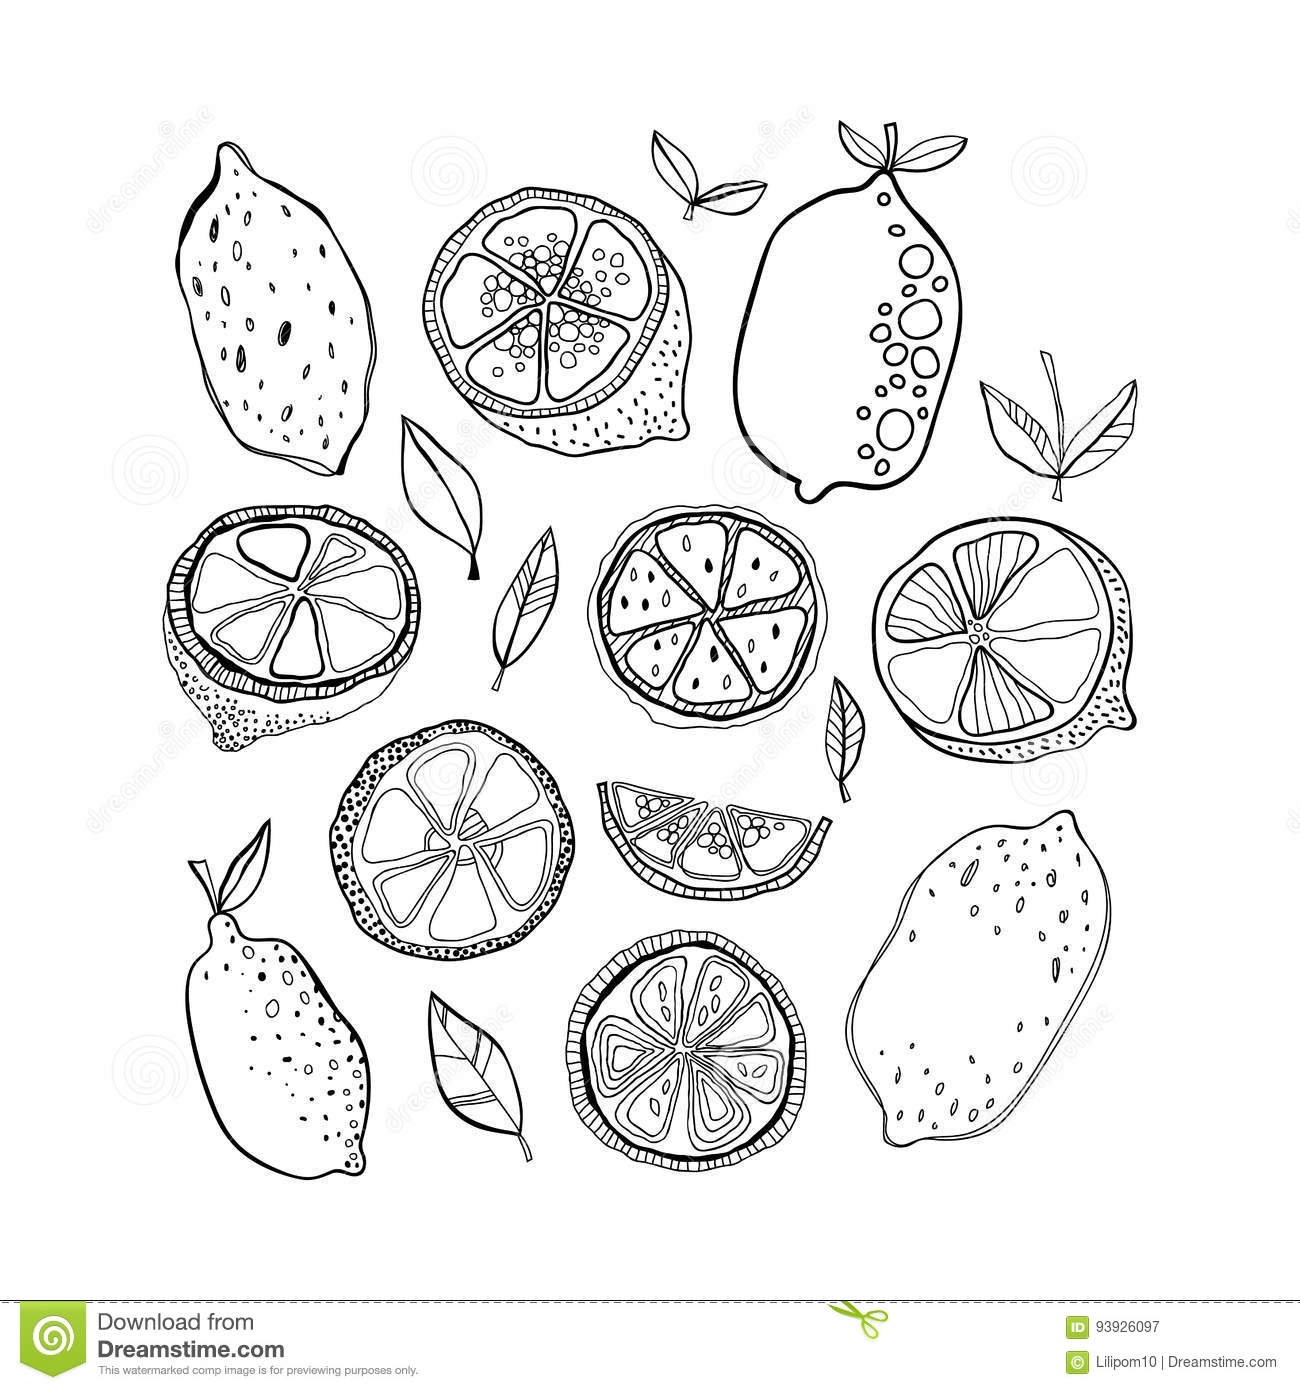 Black and white citrus fruits for coloring pages doodle illustration